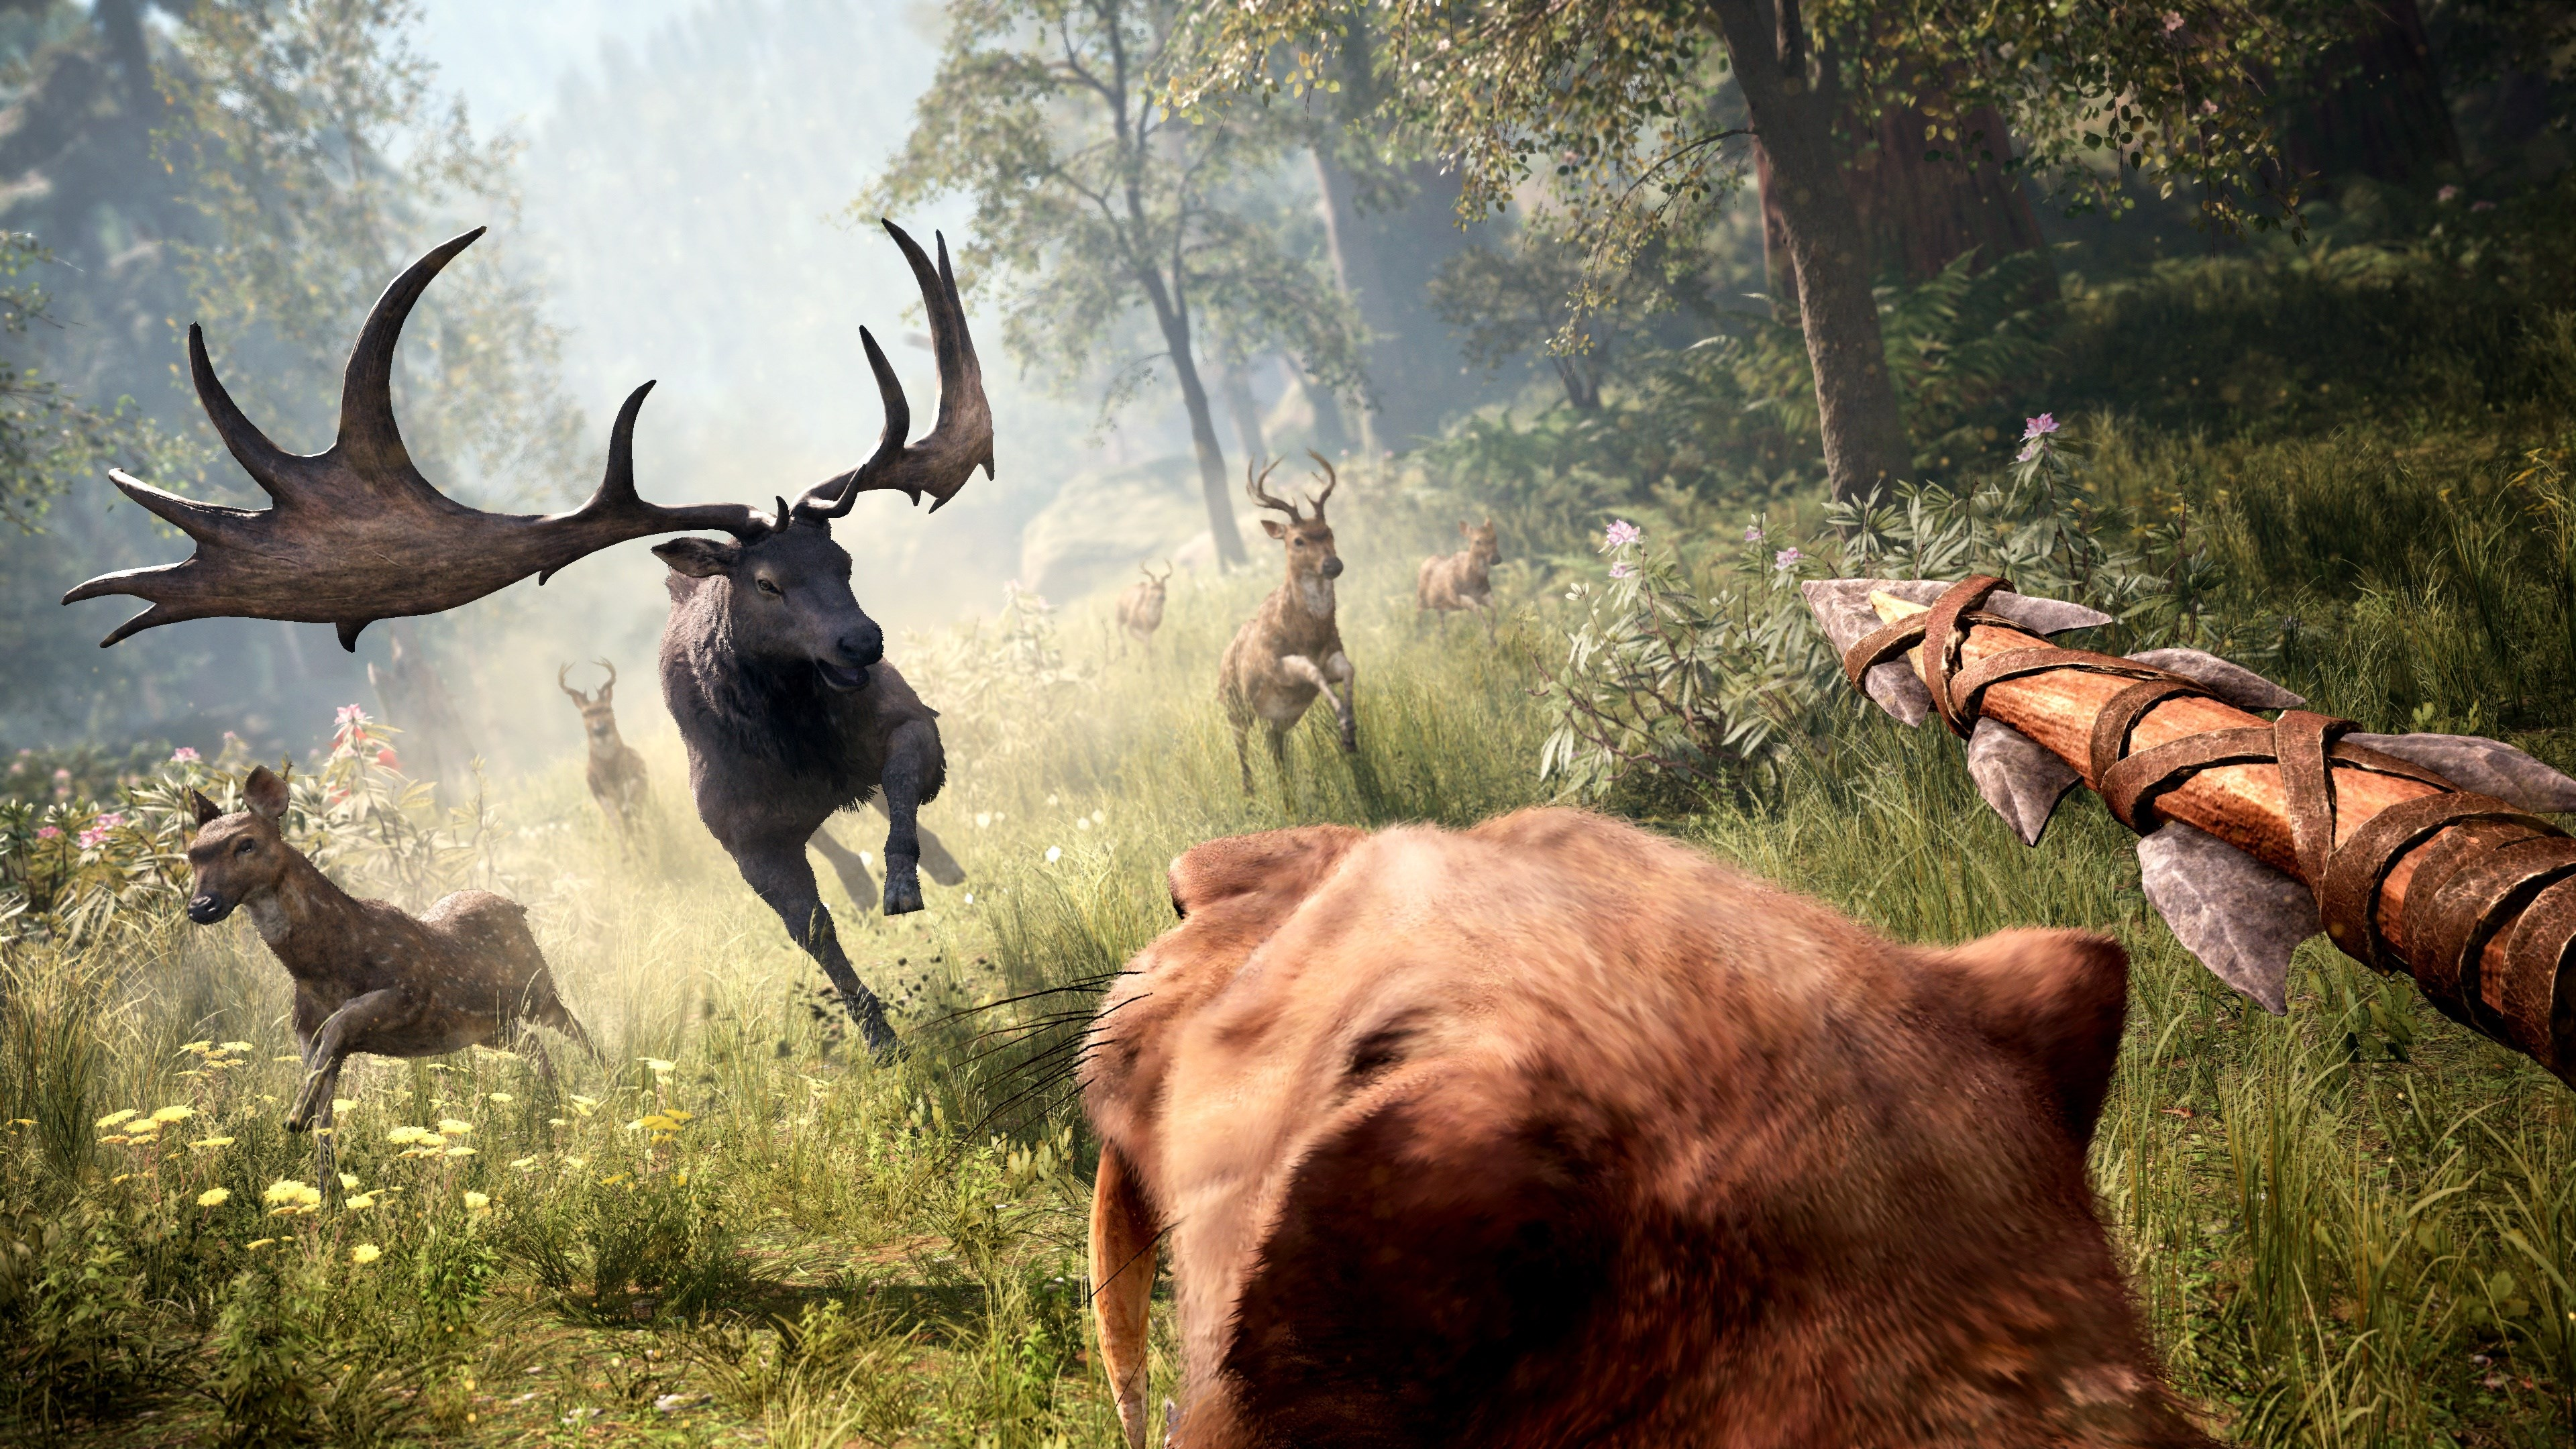 Far Cry Primal 4k Ultra Hd Wallpaper High Quality Walls